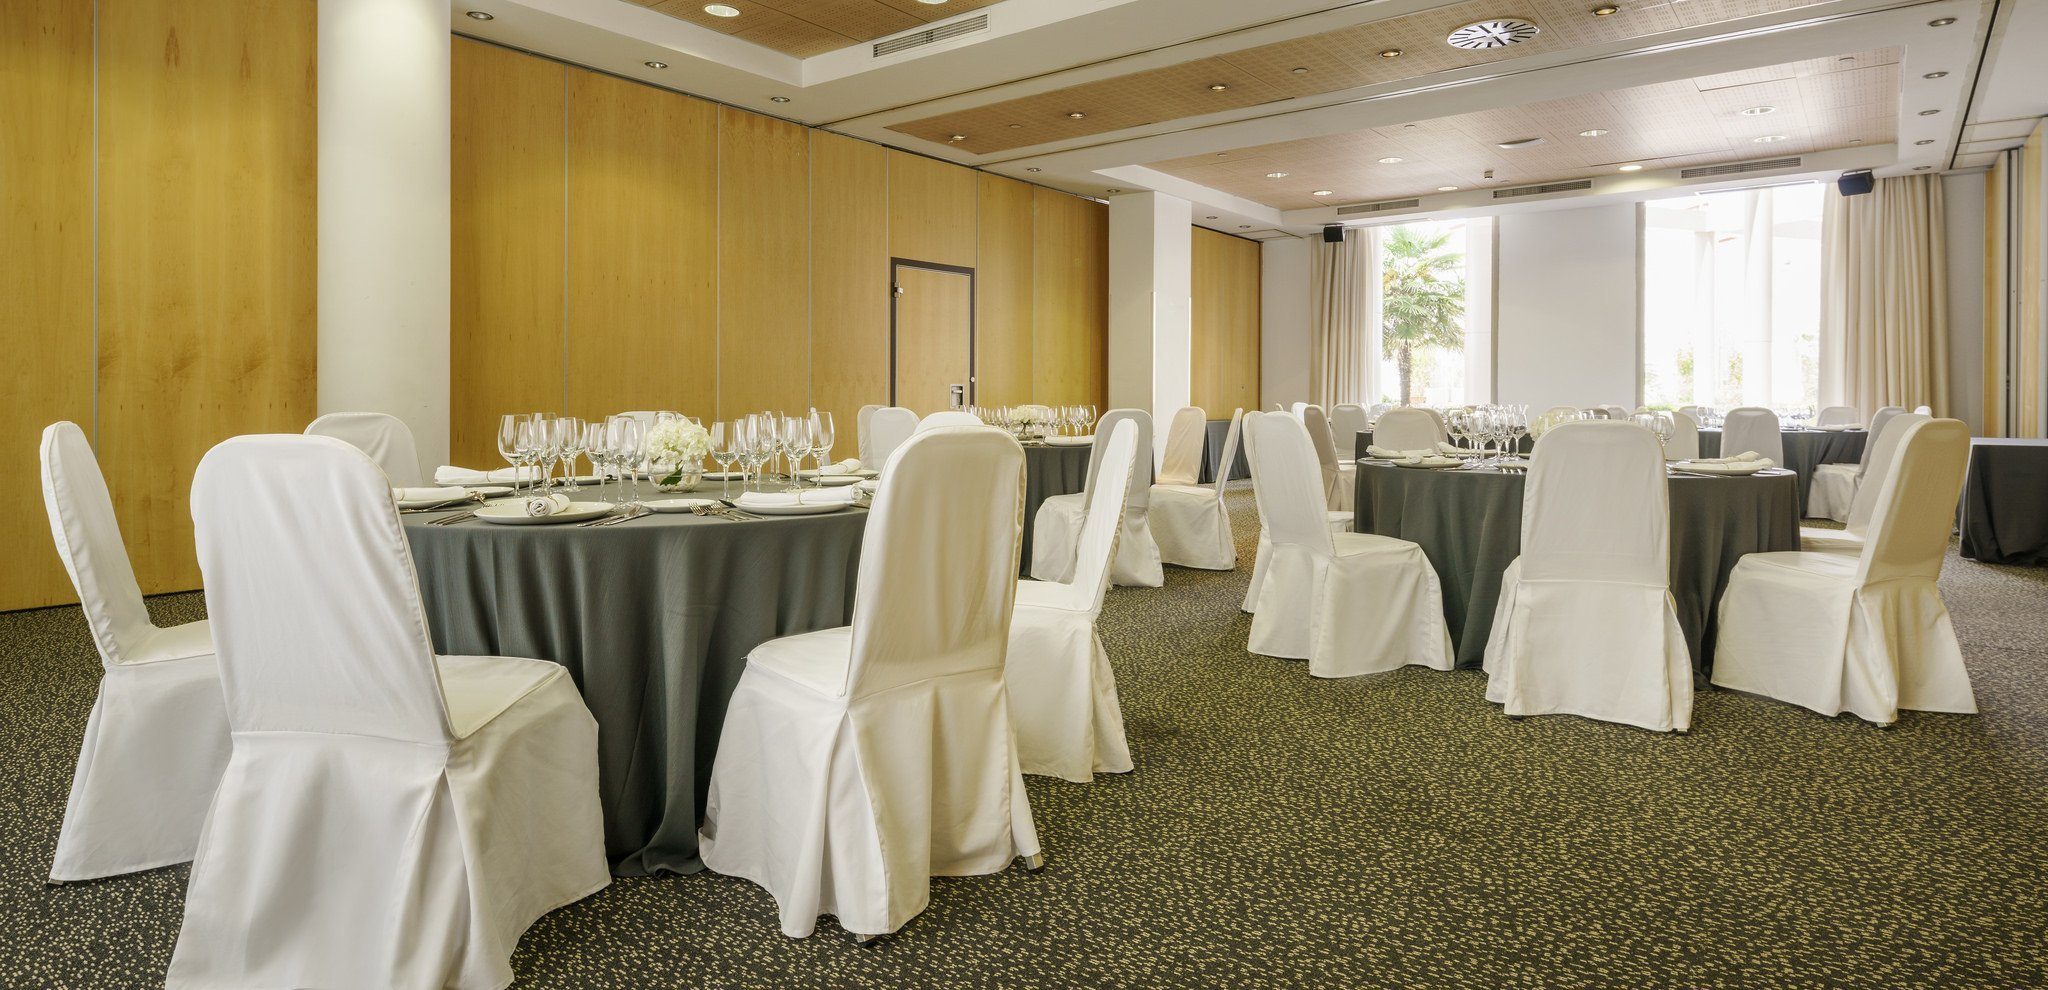 Salones Eventos Madrid Eventos De Ilunion Hoteles Web Oficial